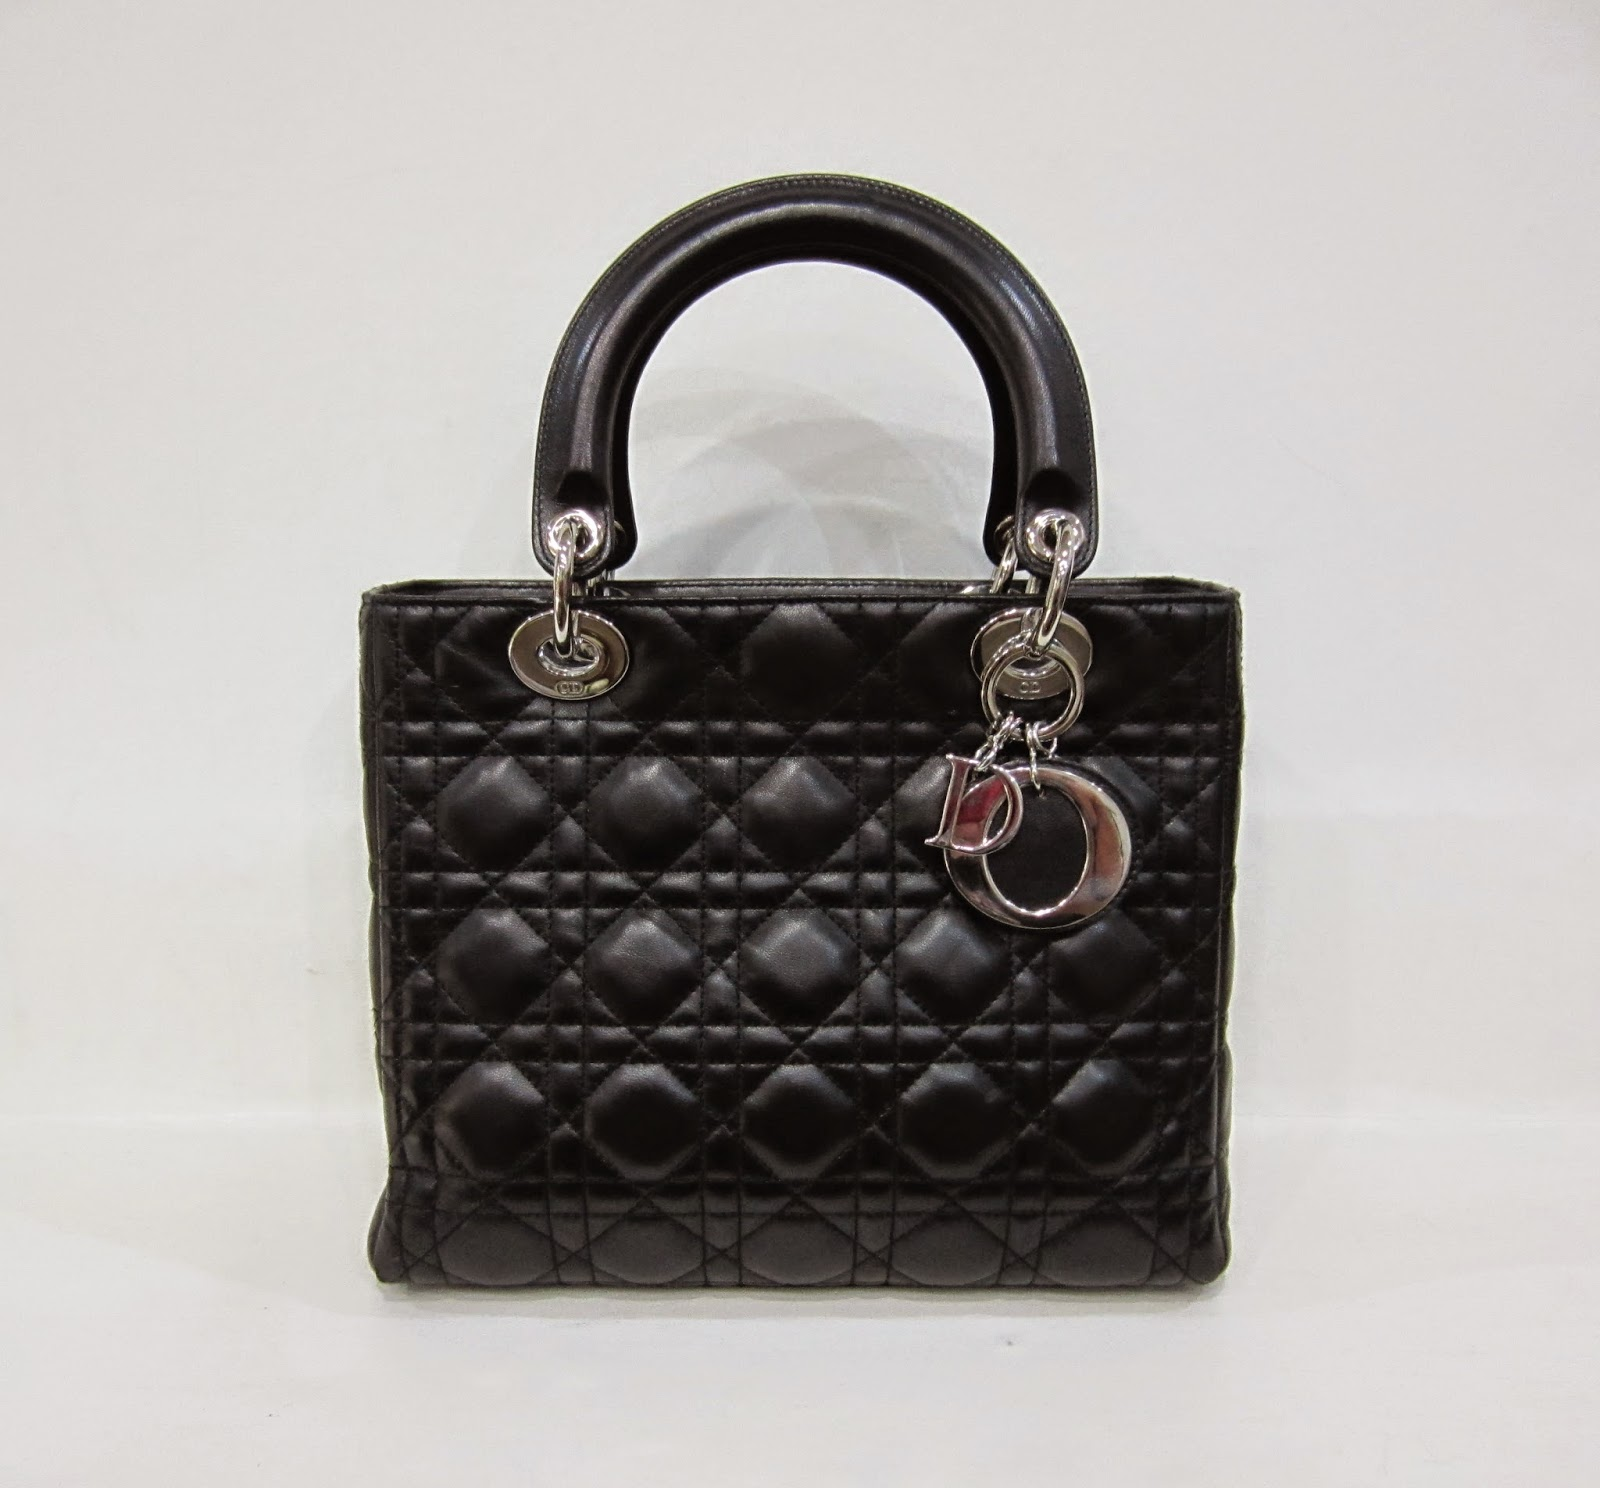 Christian Dior Black Leather Lady Dior Bag